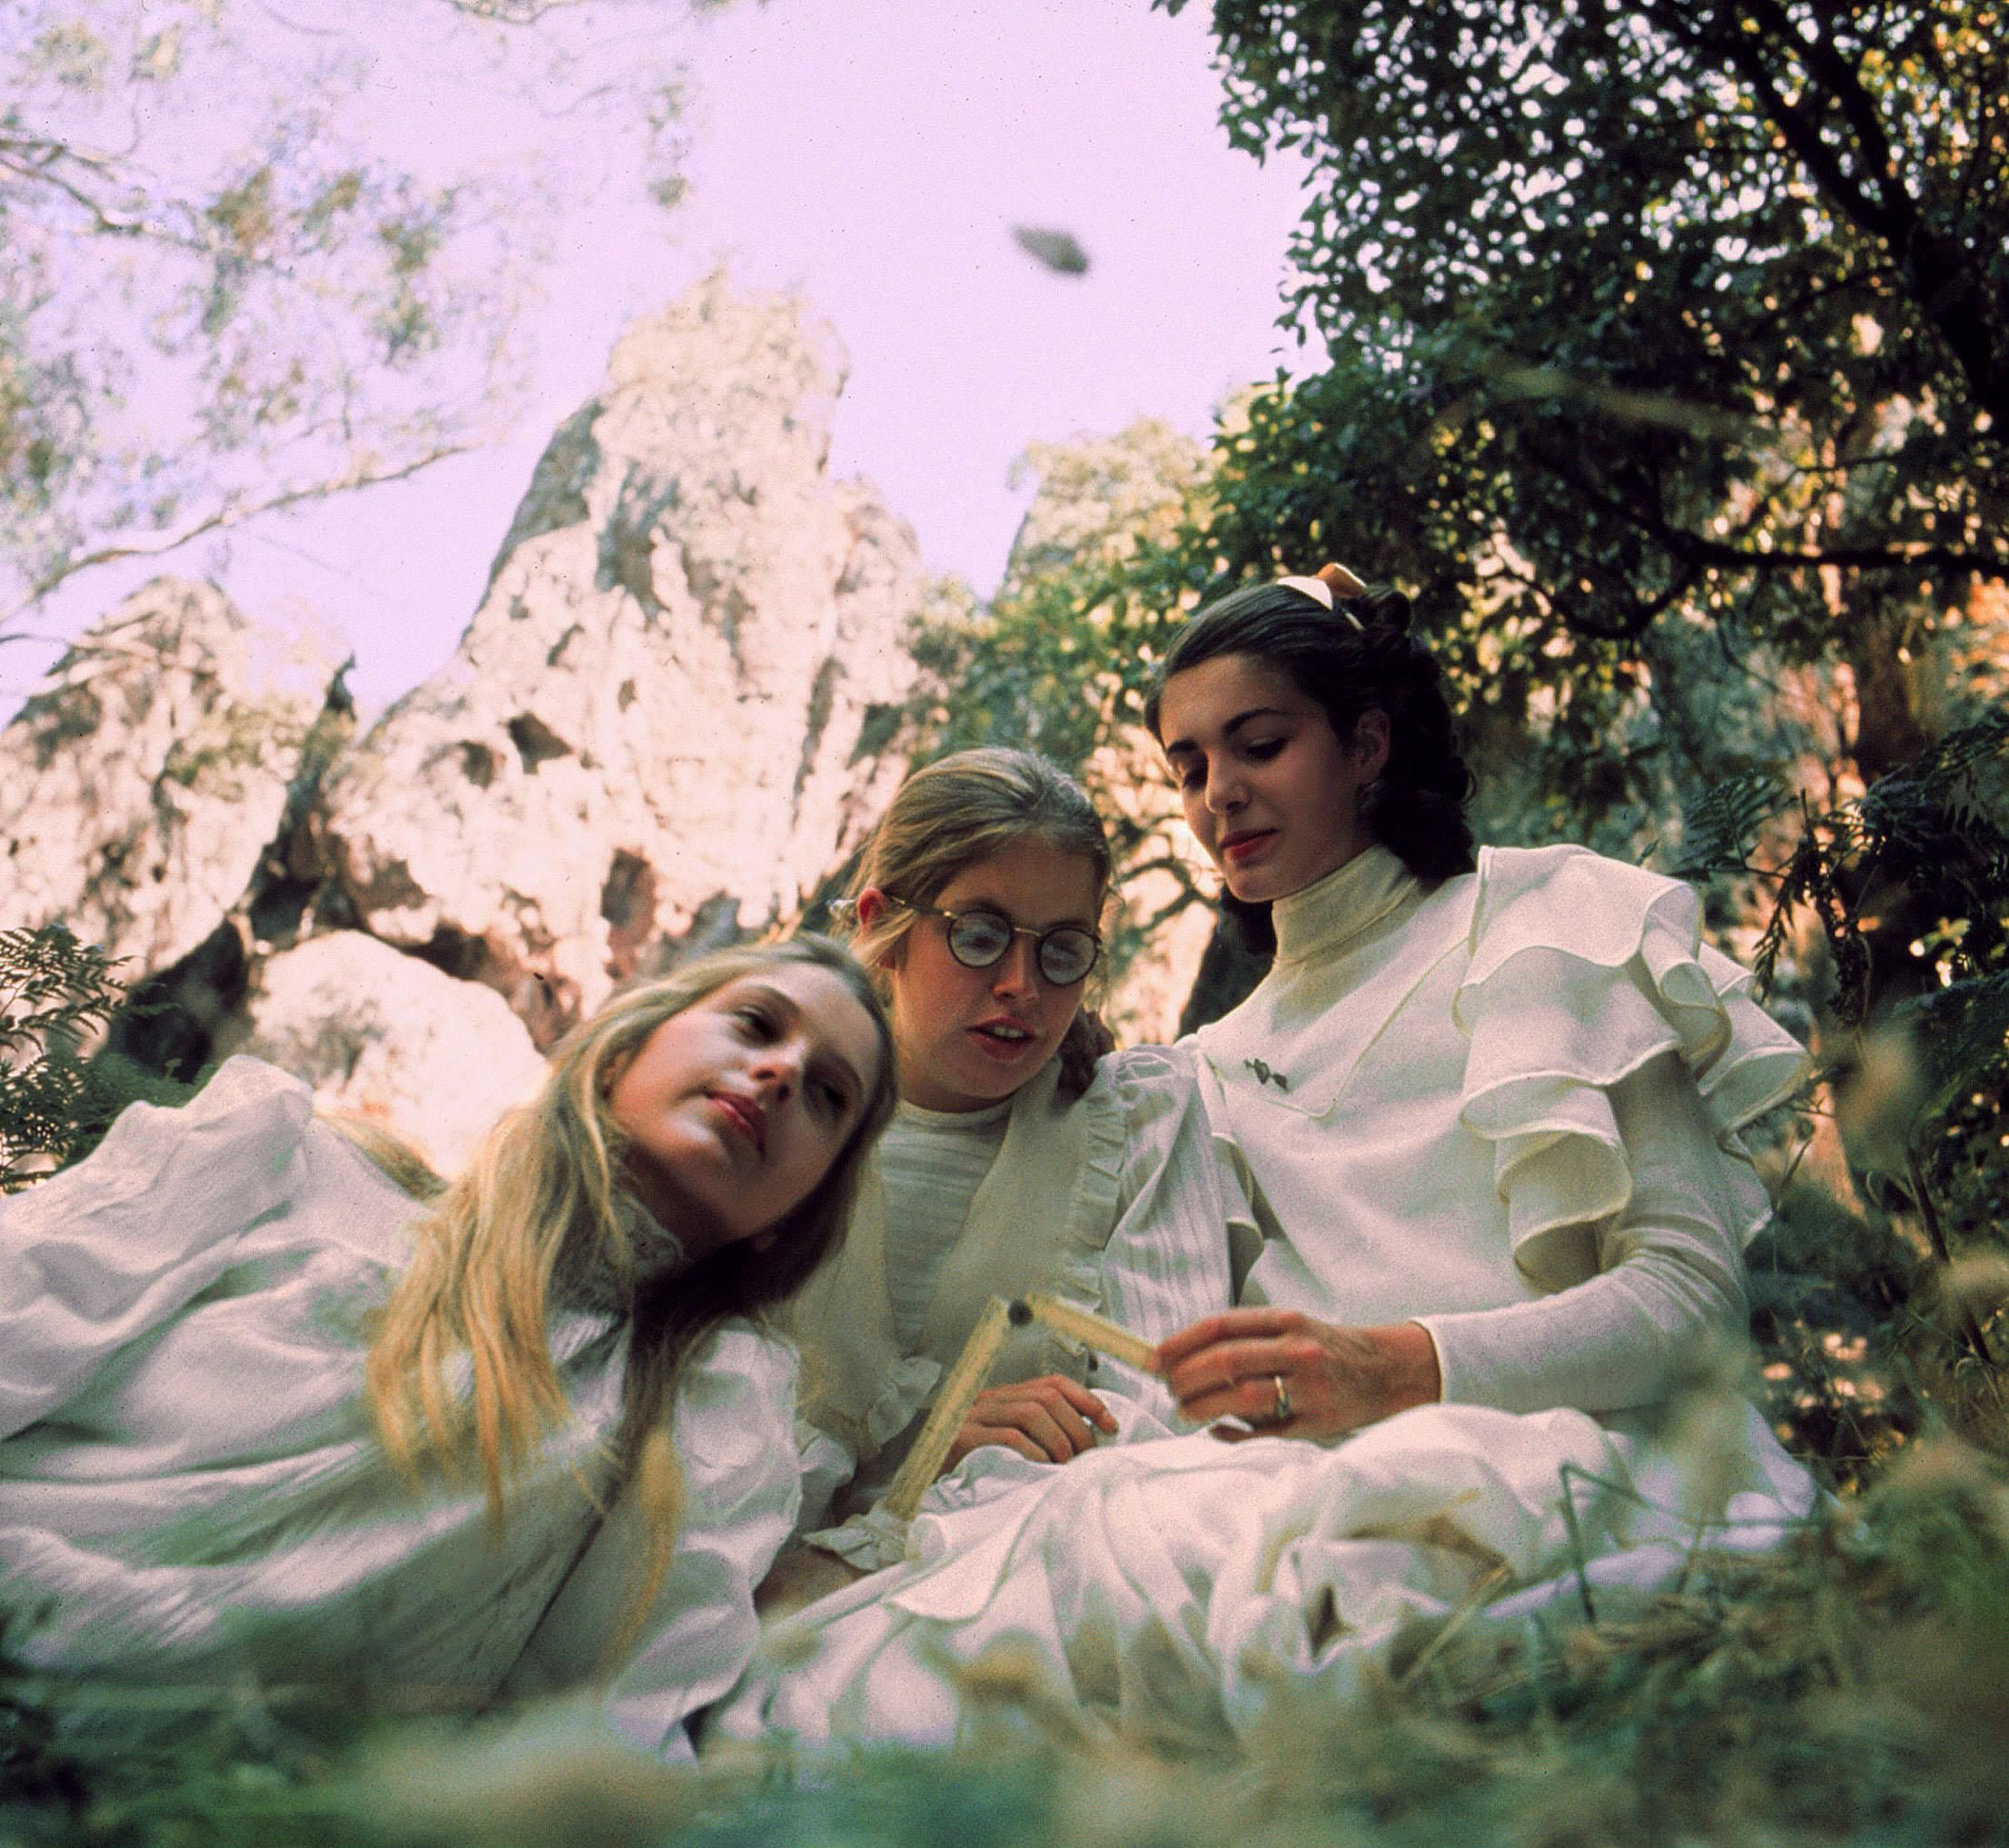 Picnic at Hanging Rock (1975)   The Criterion Collection